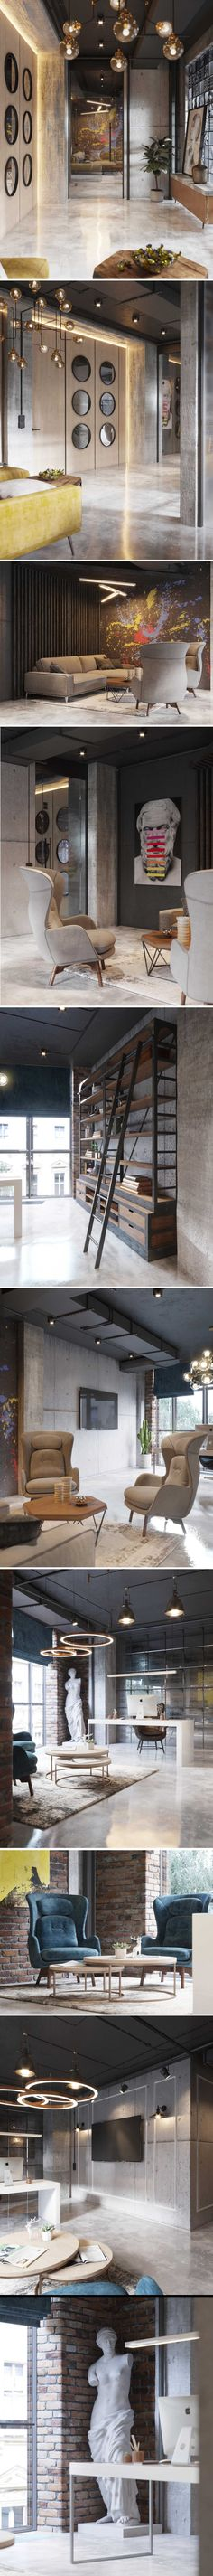 New project for office spaces loft style - Галерея Interior Exterior, Modern Interior, Interior Architecture, Interior Design, Wooden Wall Cladding, Design Industrial, Loft Style, Office Spaces, Fashion Room